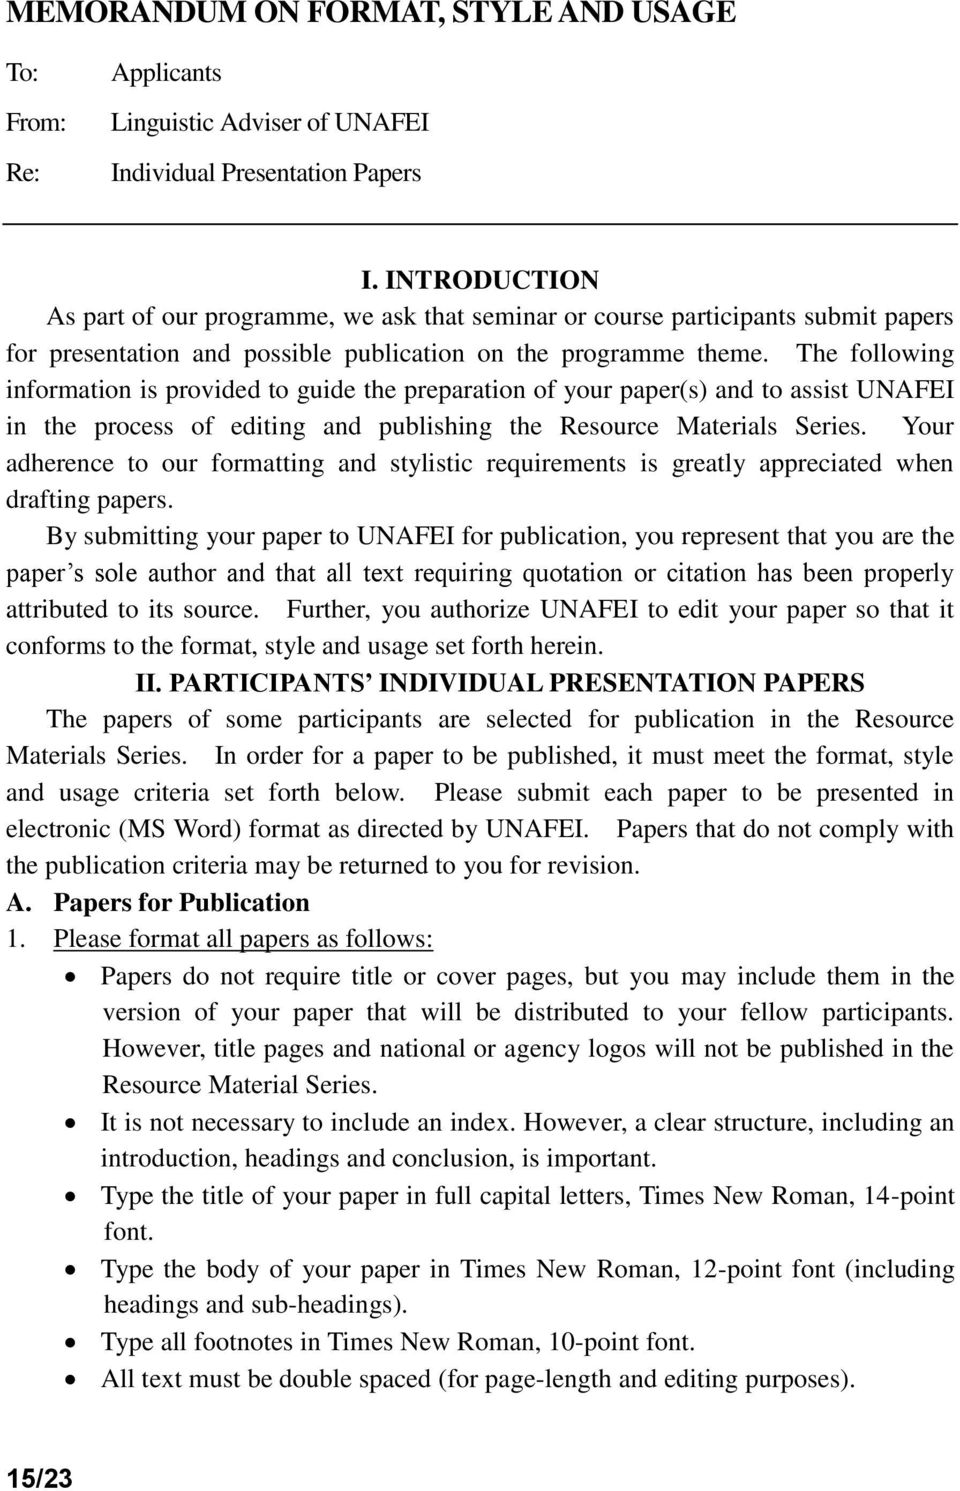 The following information is provided to guide the preparation of your paper(s) and to assist UNAFEI in the process of editing and publishing the Resource Materials Series.